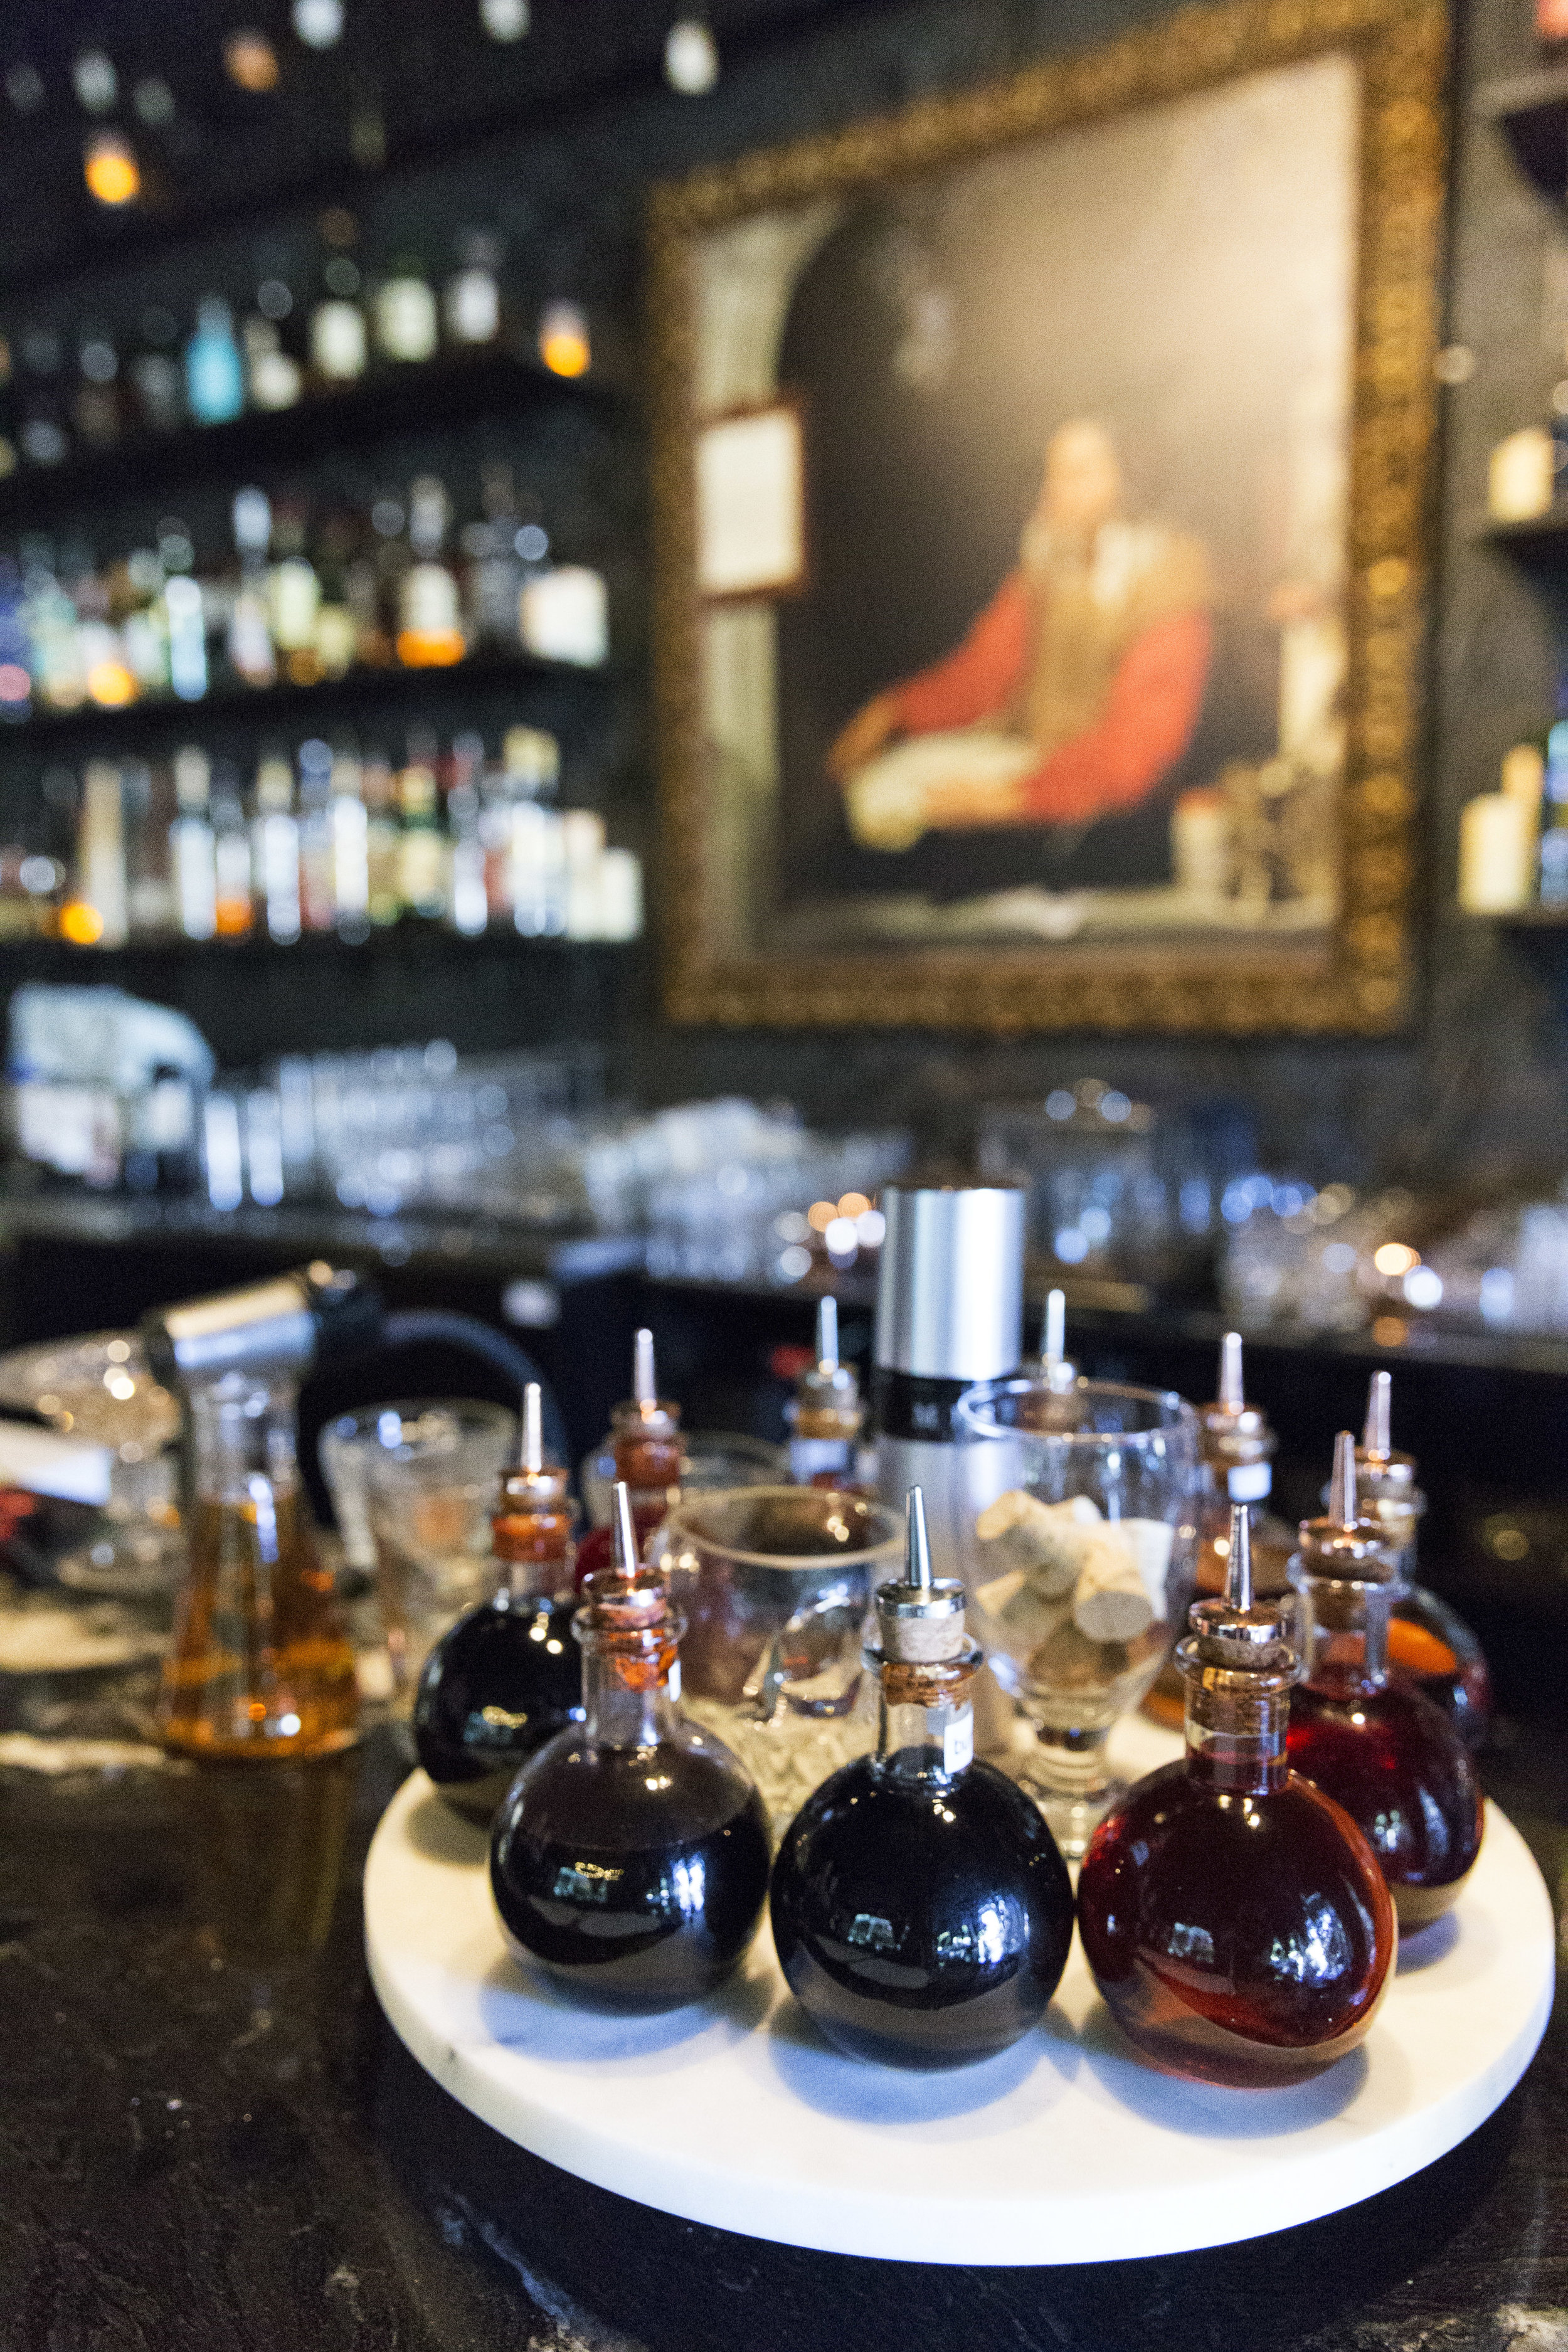 Alchemy - Chemistry inspired cocktail bar and restaurant in West Seattle.jpg